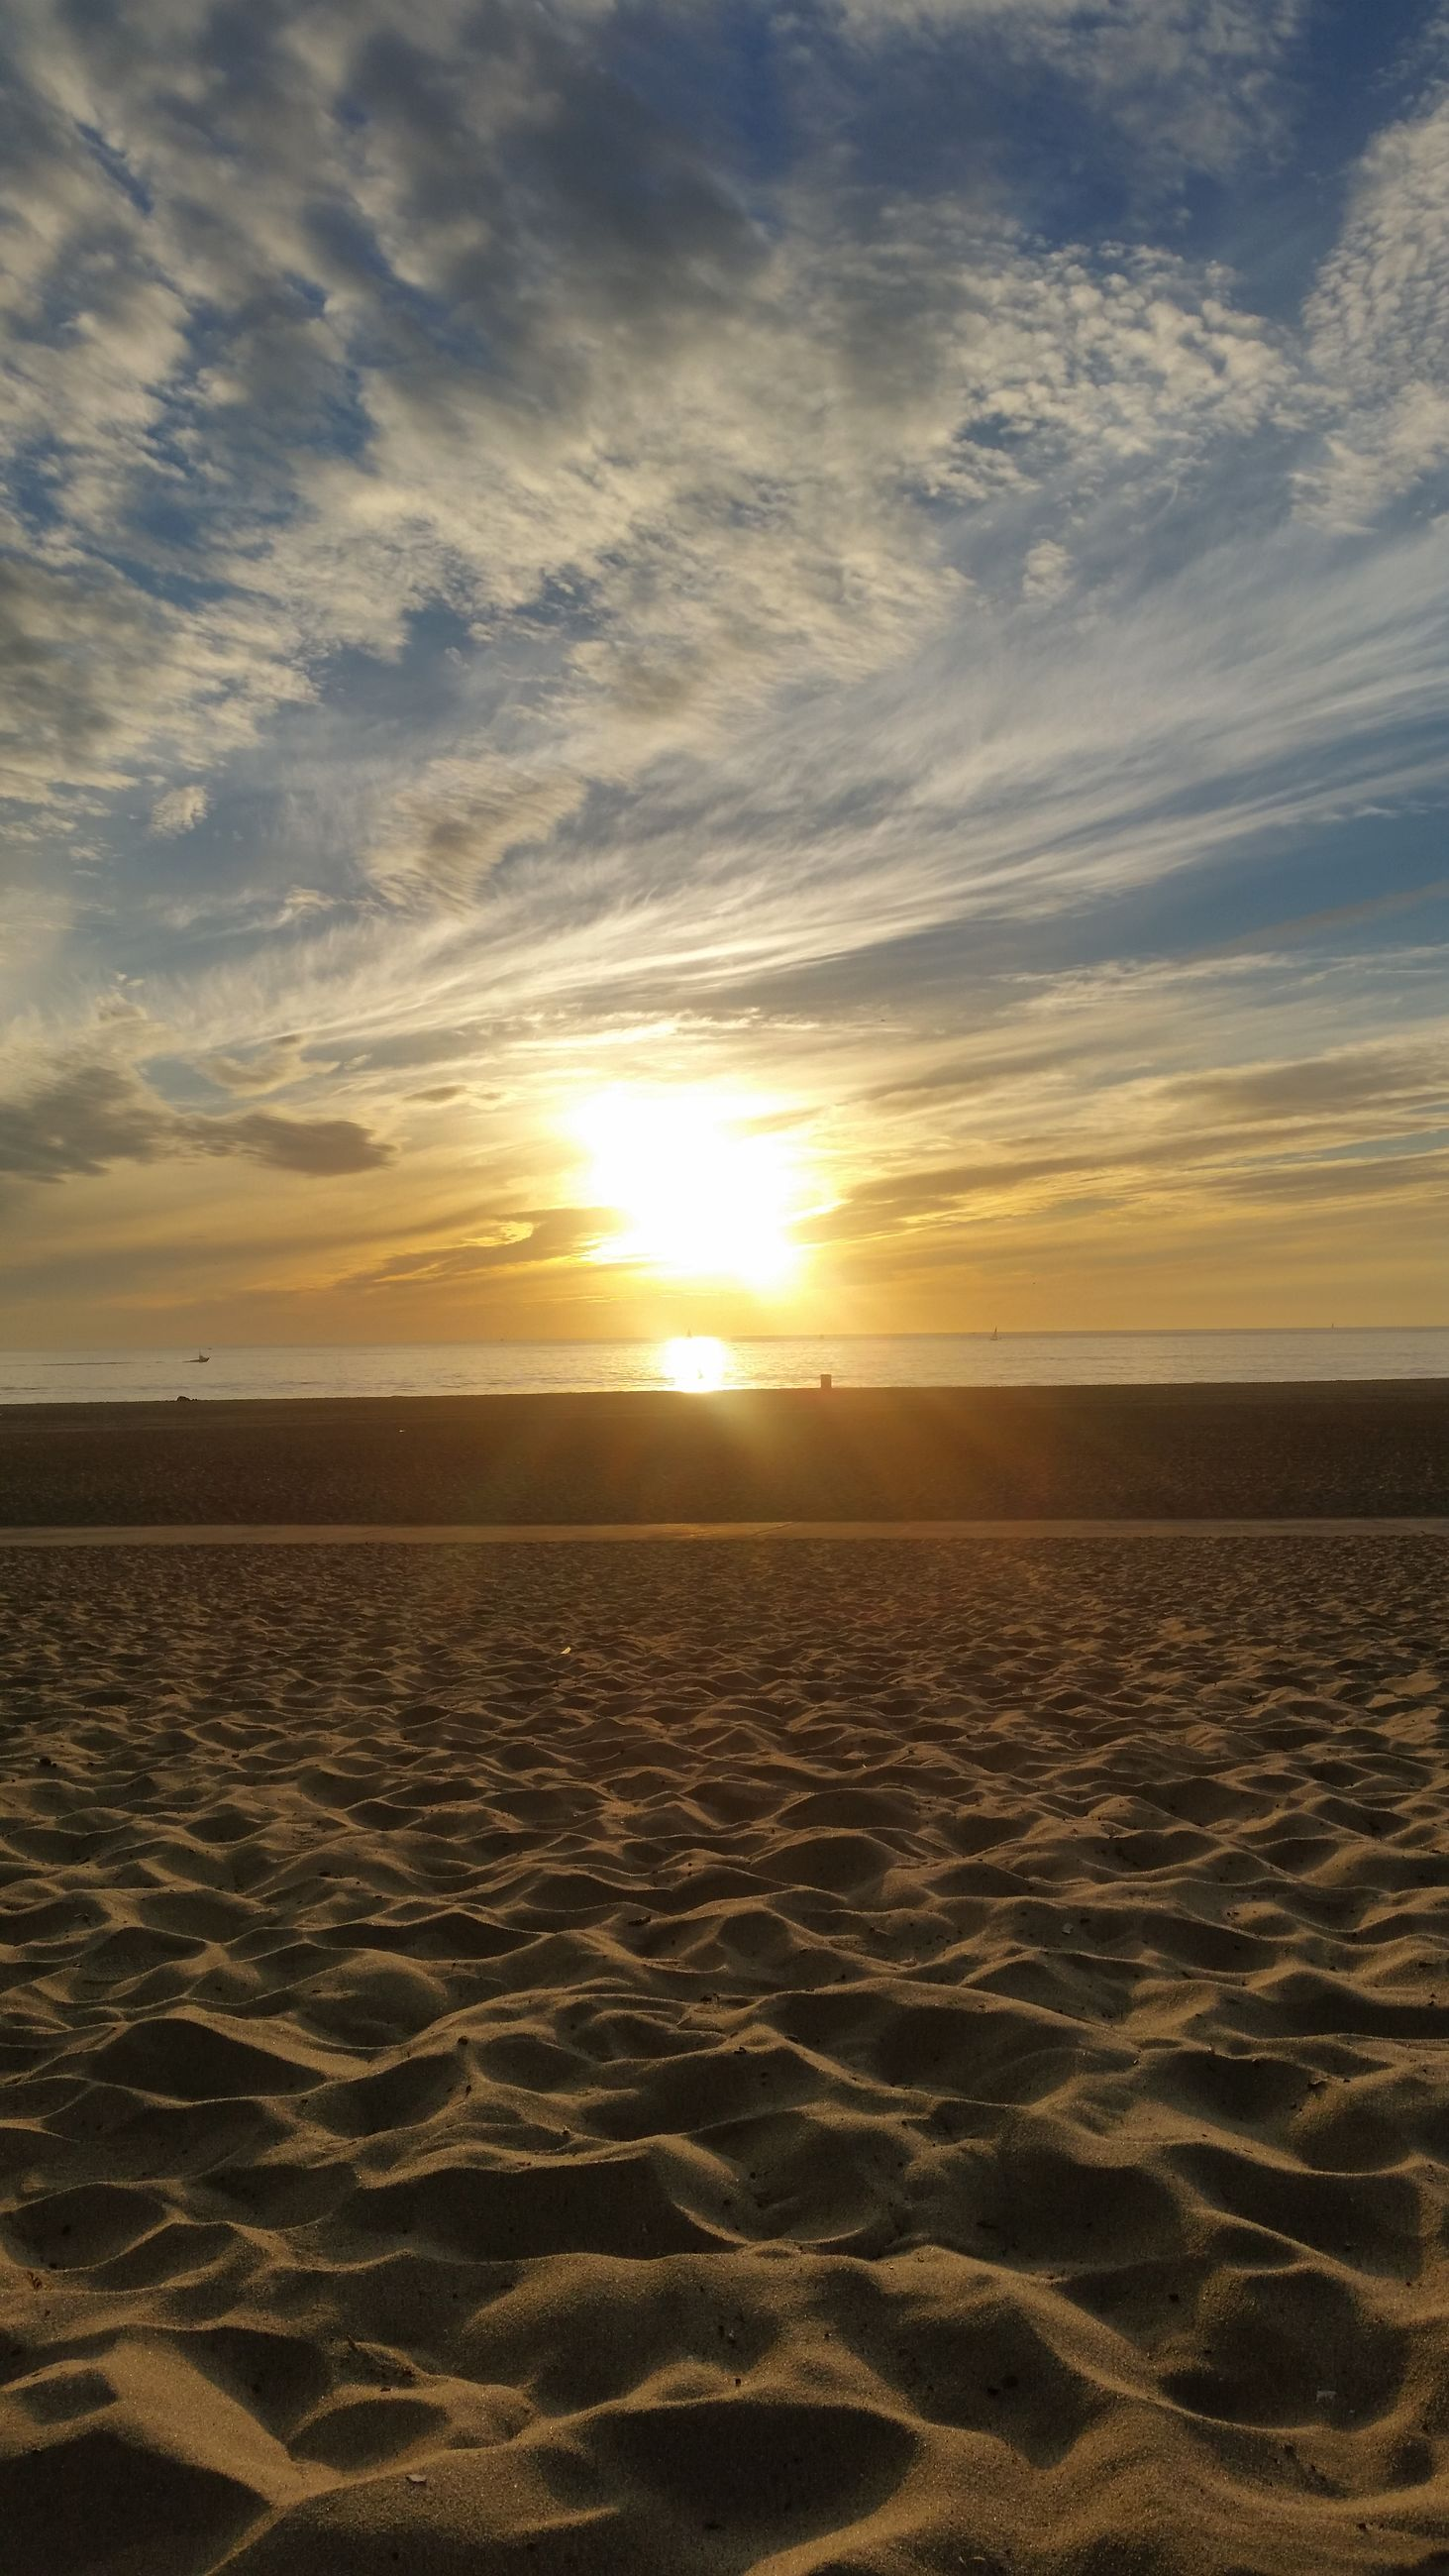 sand, sun, horizon over land, sunset, sunlight, desert, sky, beauty in nature, landscape, nature, scenics, dramatic sky, tranquility, outdoors, beauty, no people, arid climate, sand dune, day, motorsport